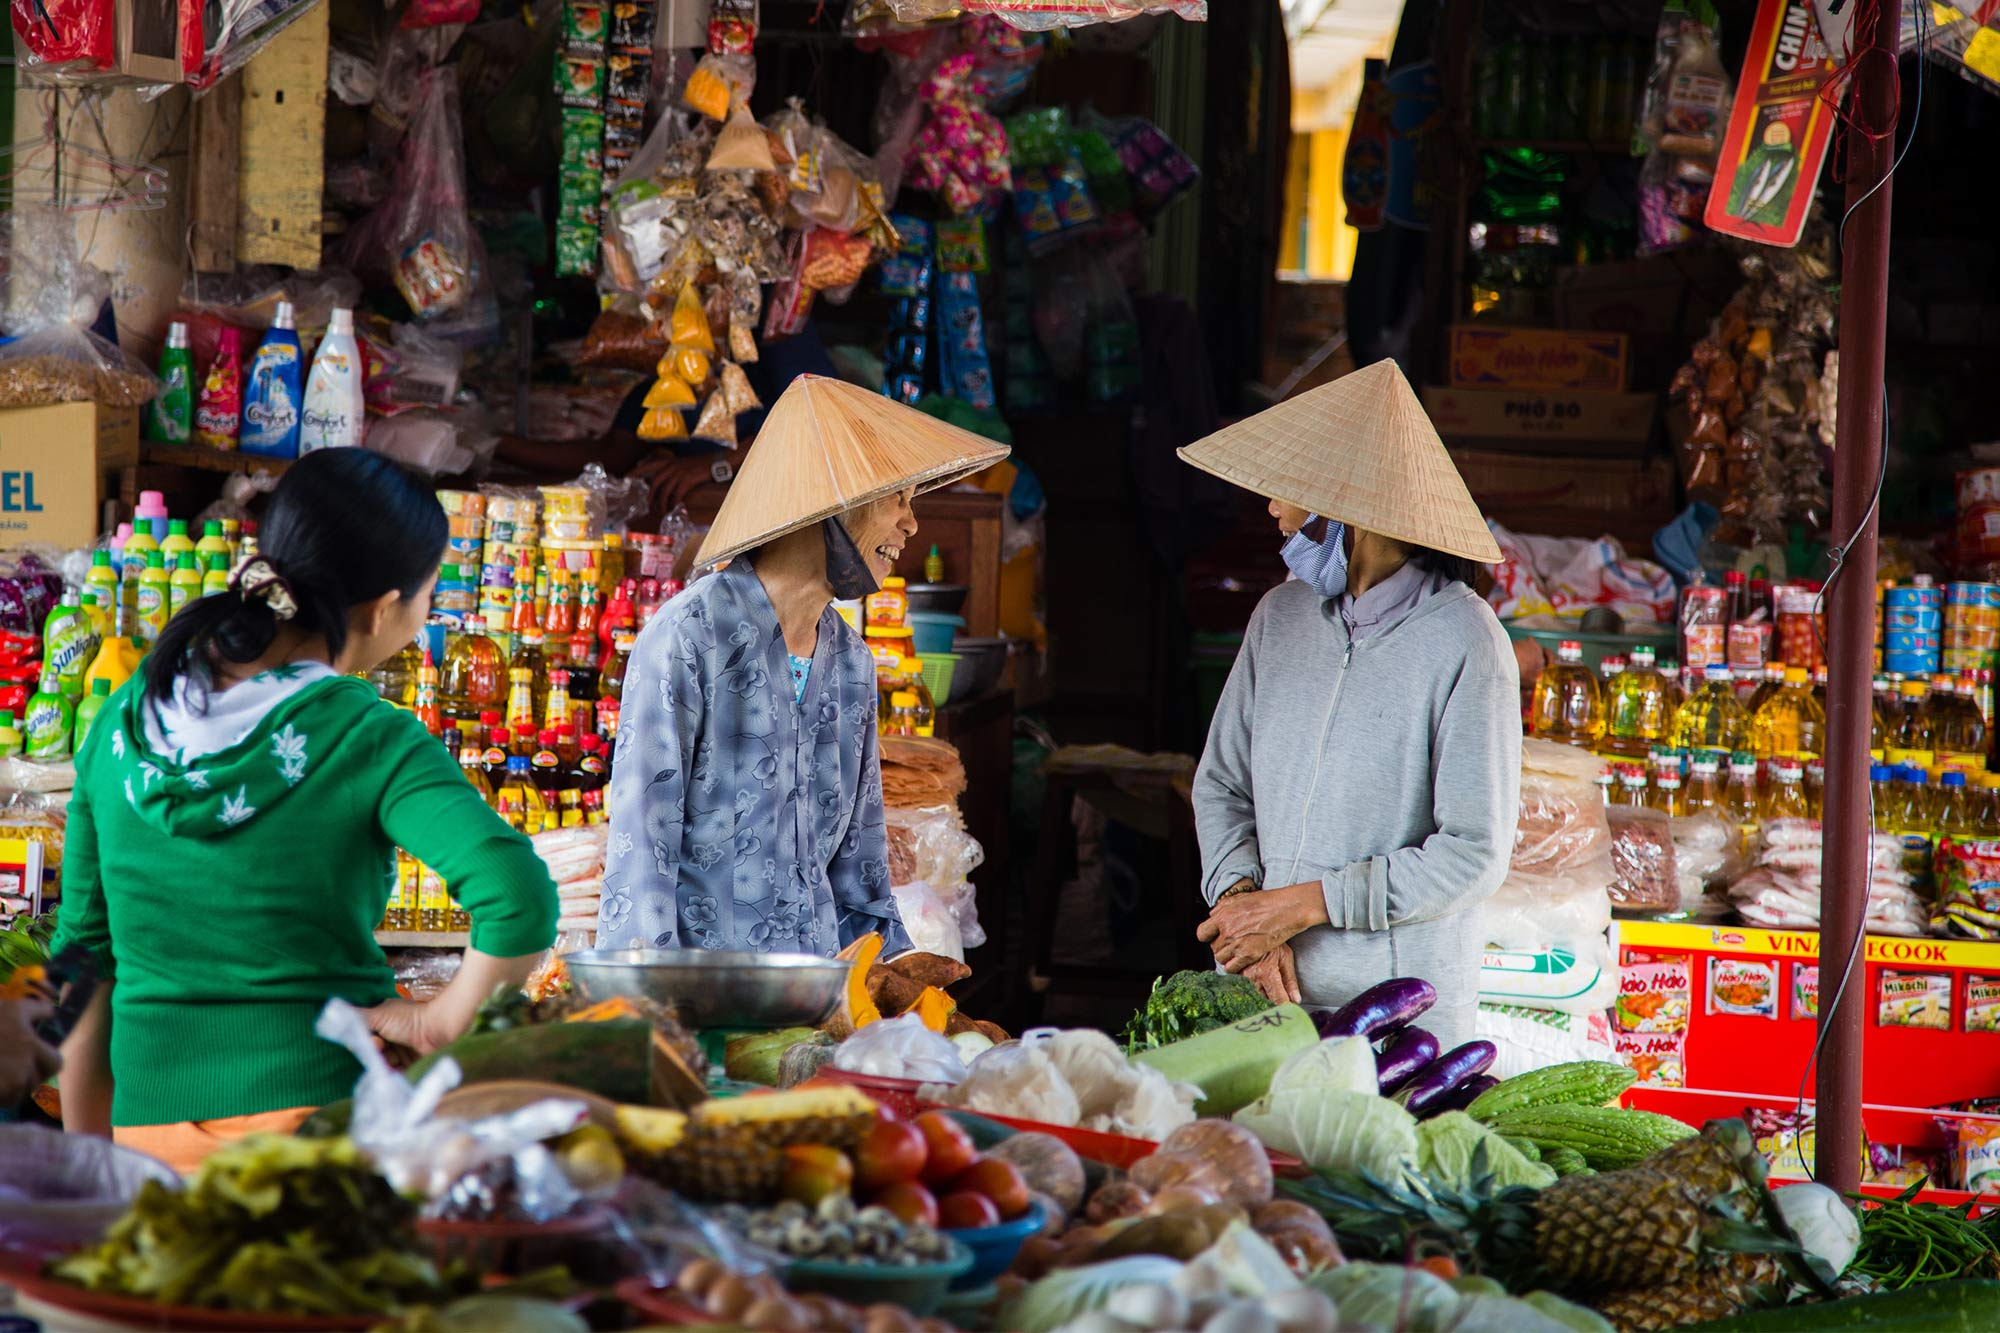 Consumer Trends In Vietnam: New Shopping Habits Emerging In 2017 - Vietcetera